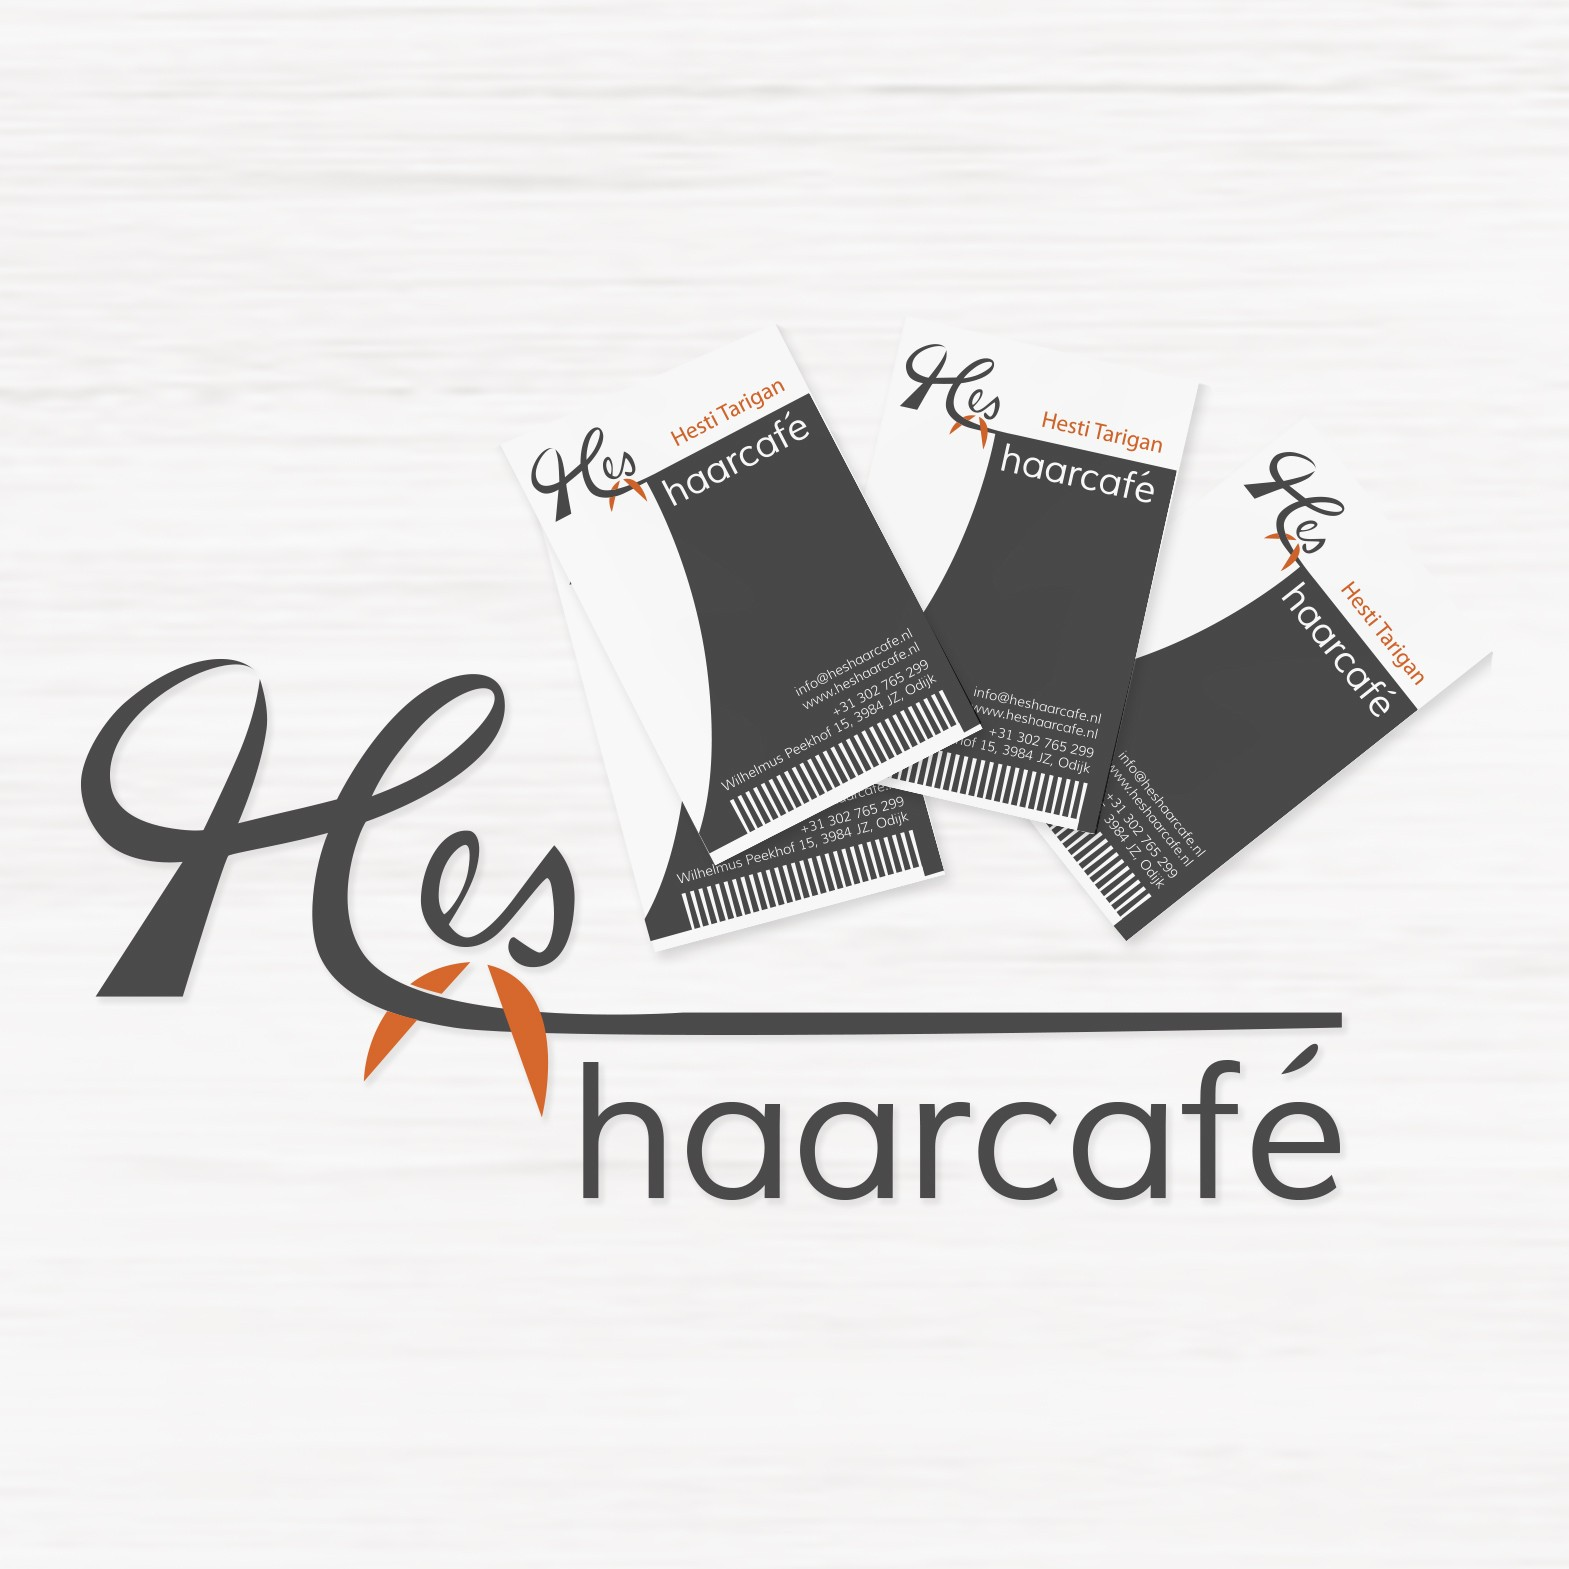 Logo & Business card design of Haarcafe